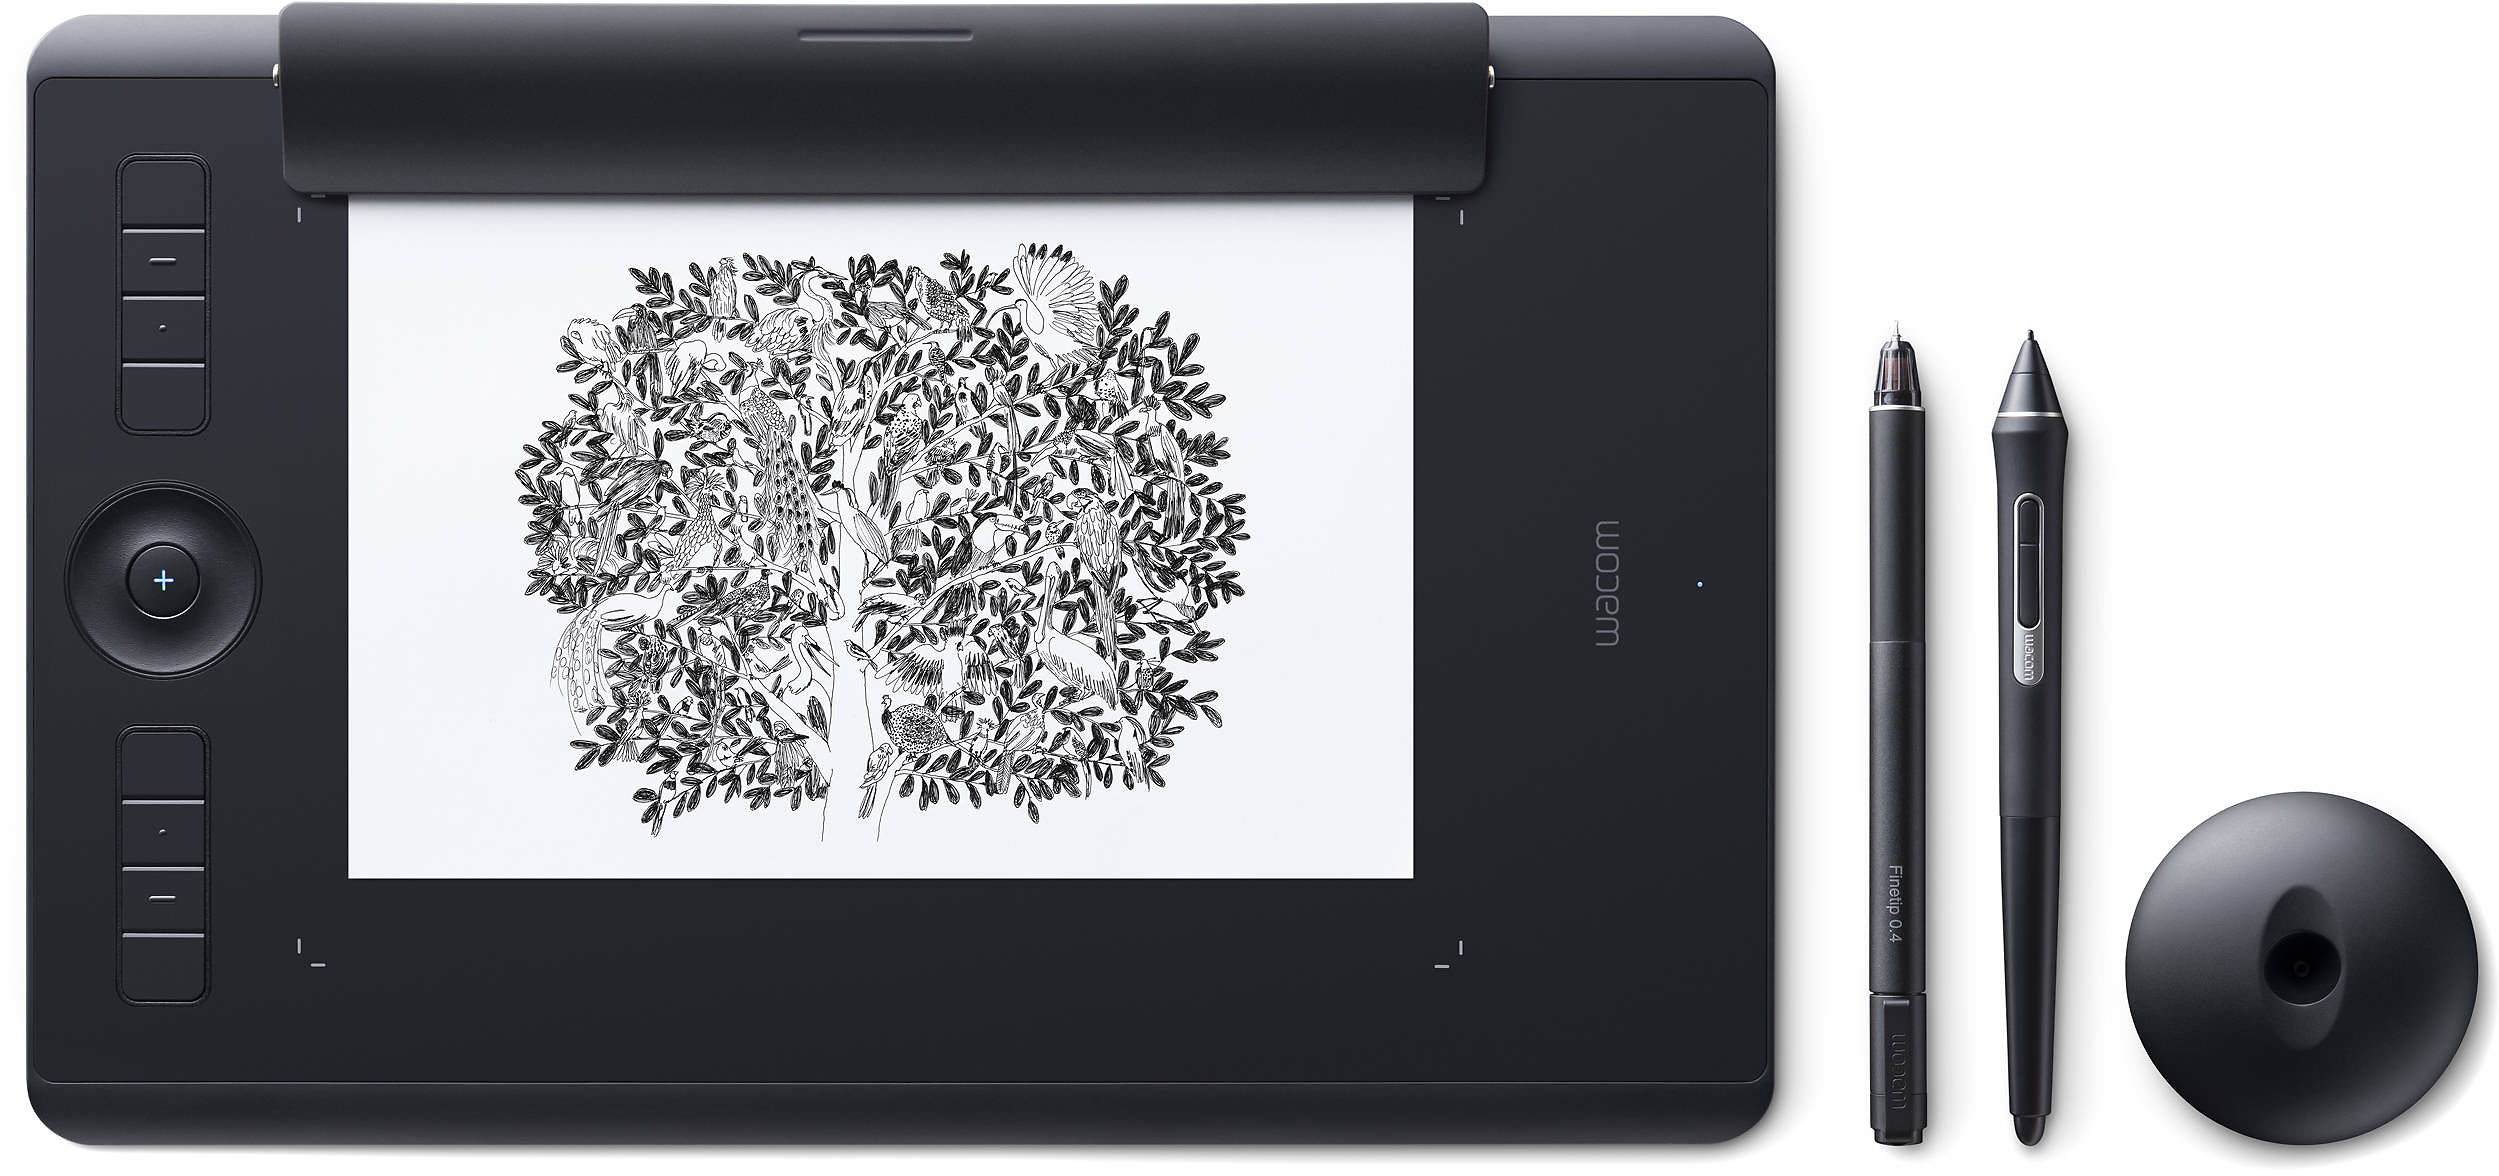 Wacom Intuos Pro Medium Graphics Tablet Image